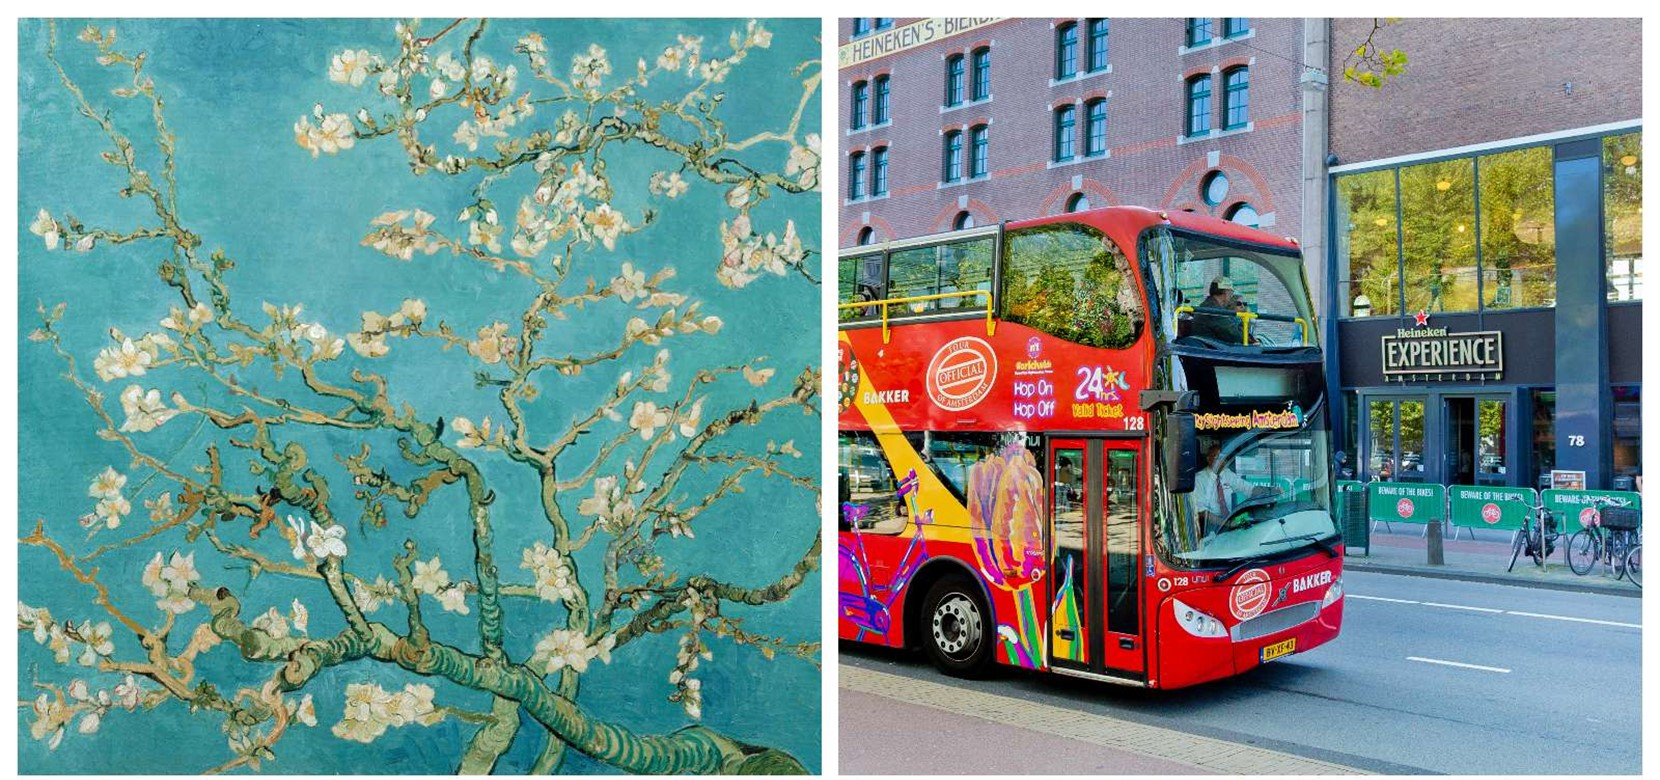 Hop on - Hop off bus & boat + Van Gogh Museum